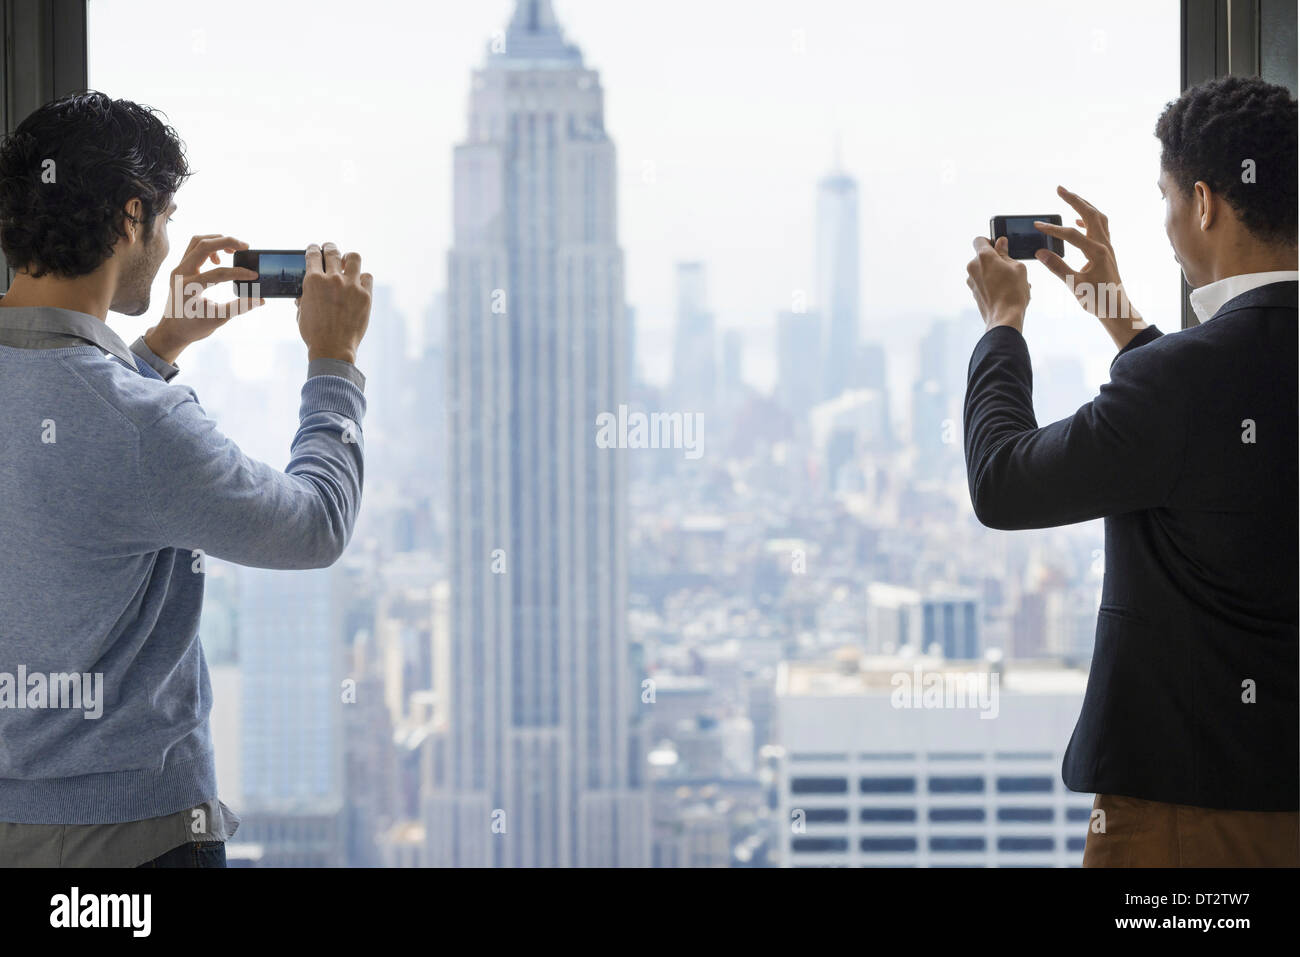 Two young men using their phones to take images of the city from an observation platform overlooking the Empire State Building - Stock Image